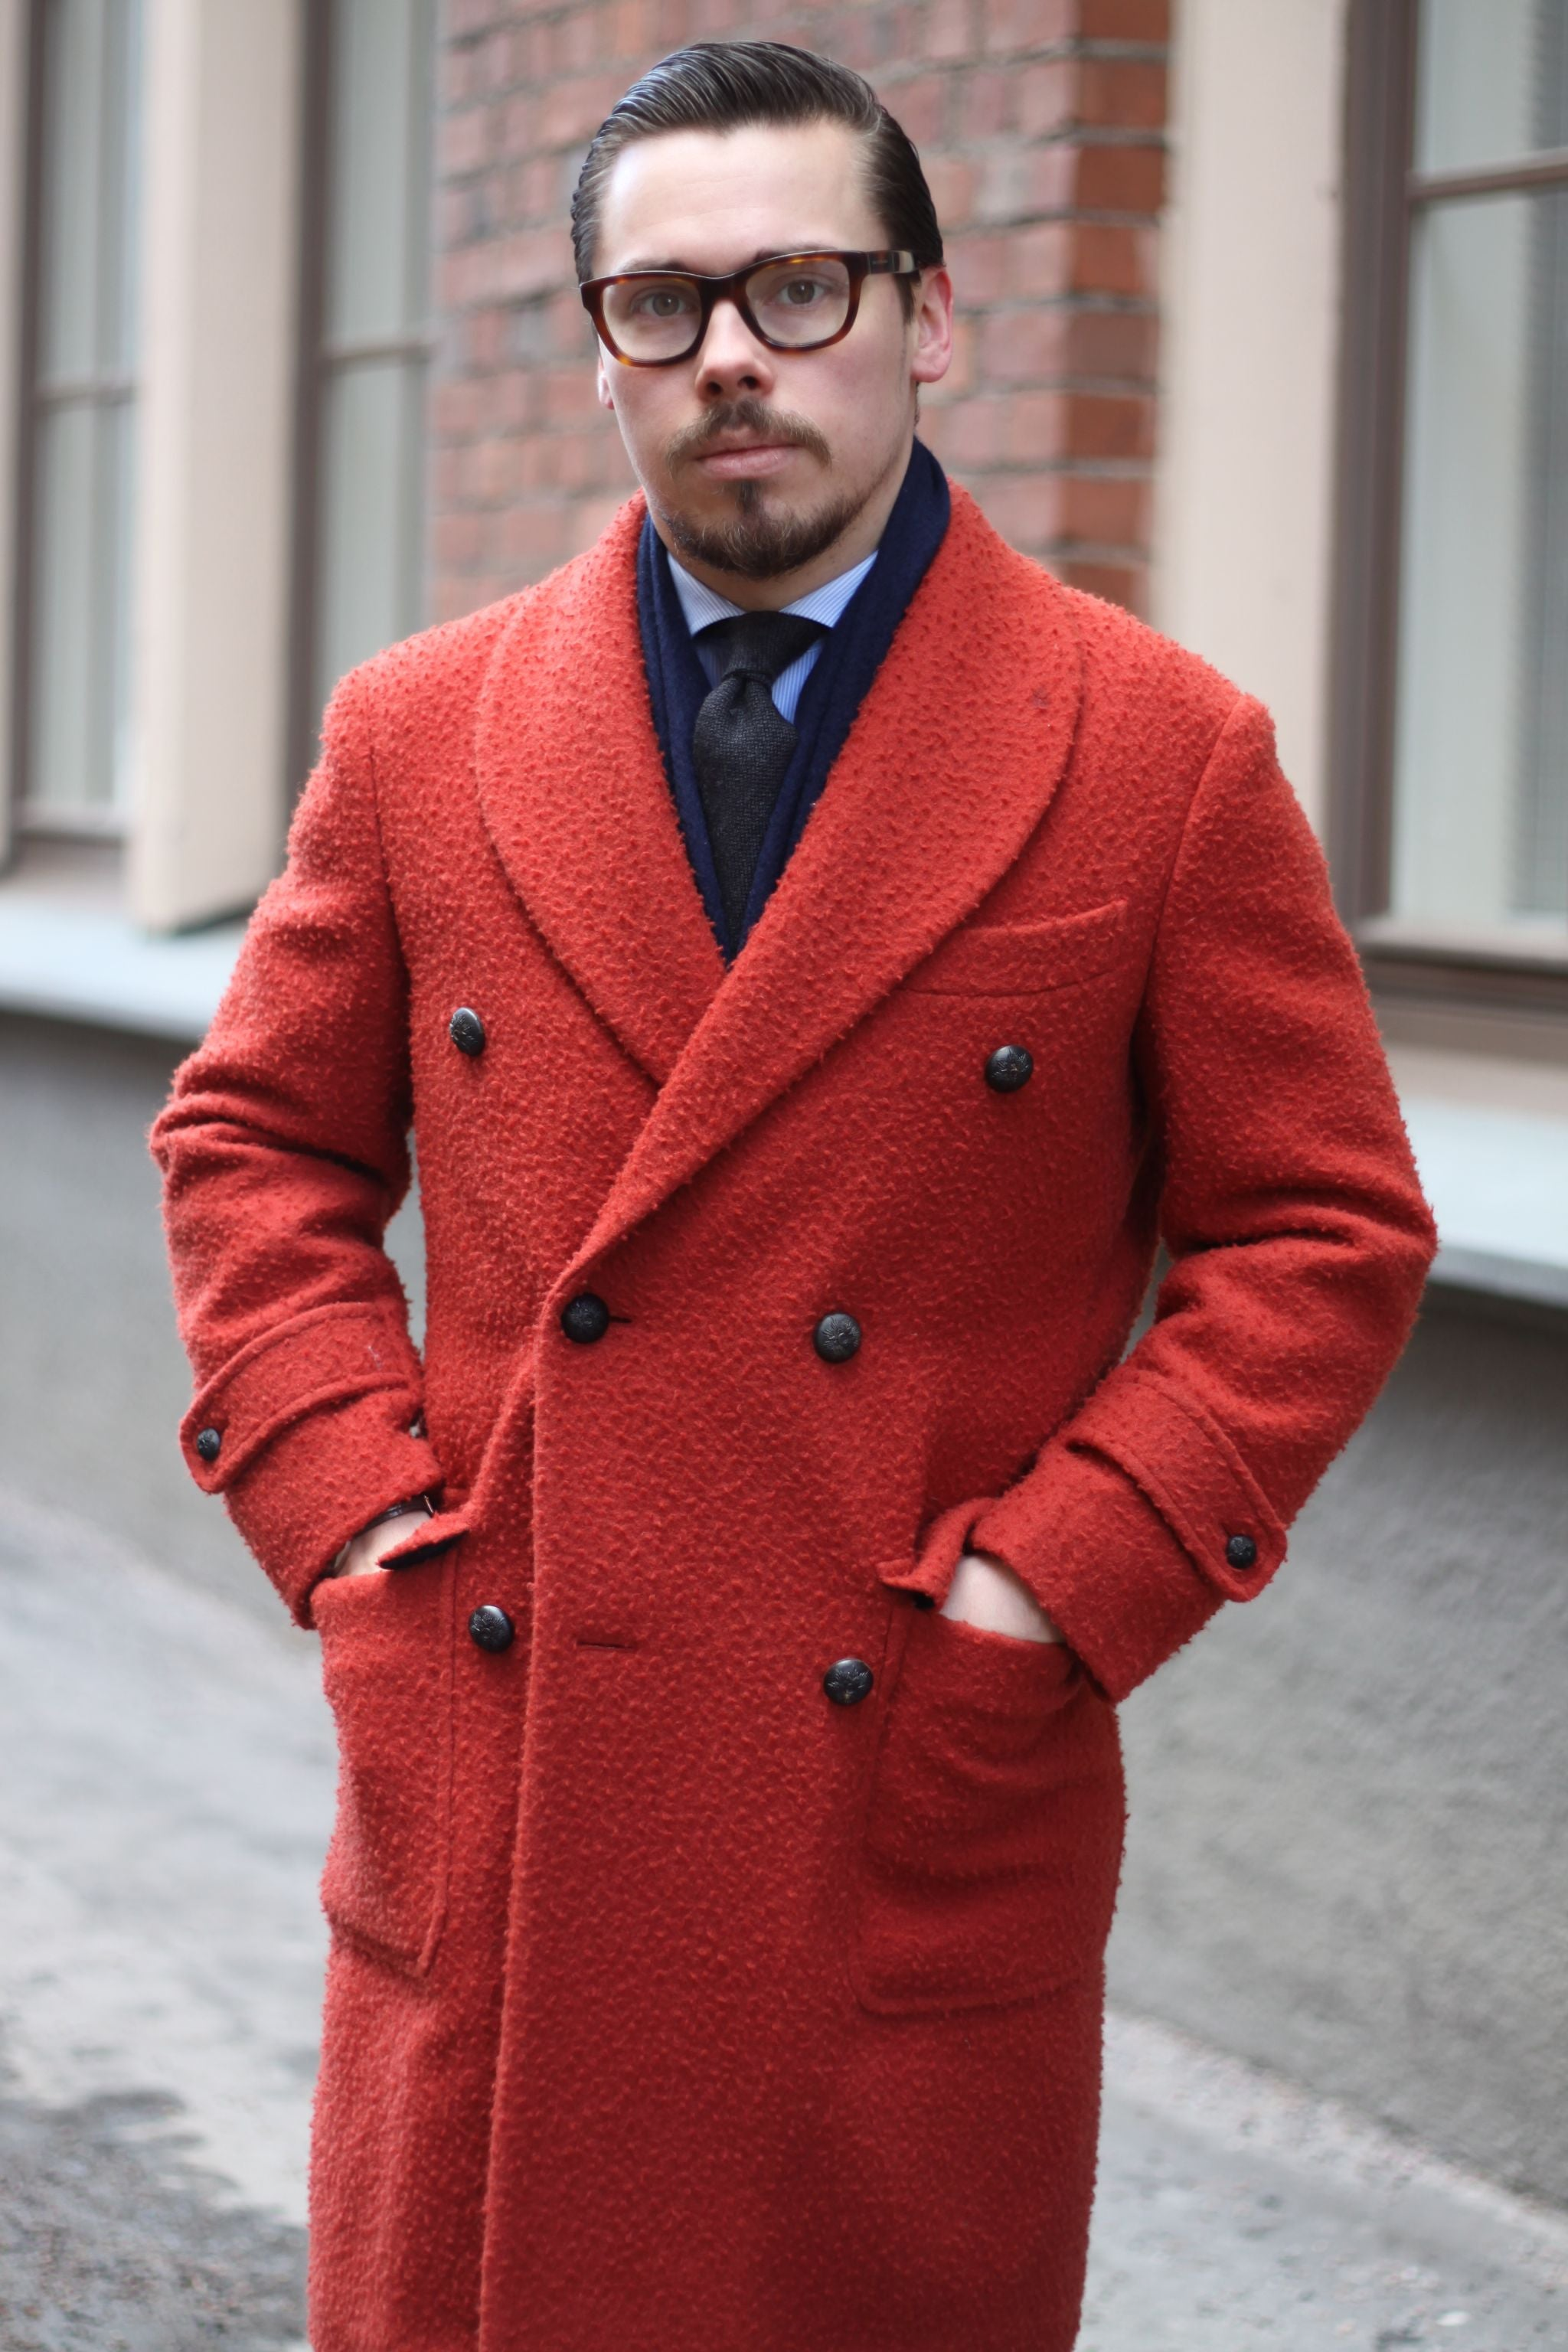 Shawl collar overcoat - Red casentino wool by The GIGI